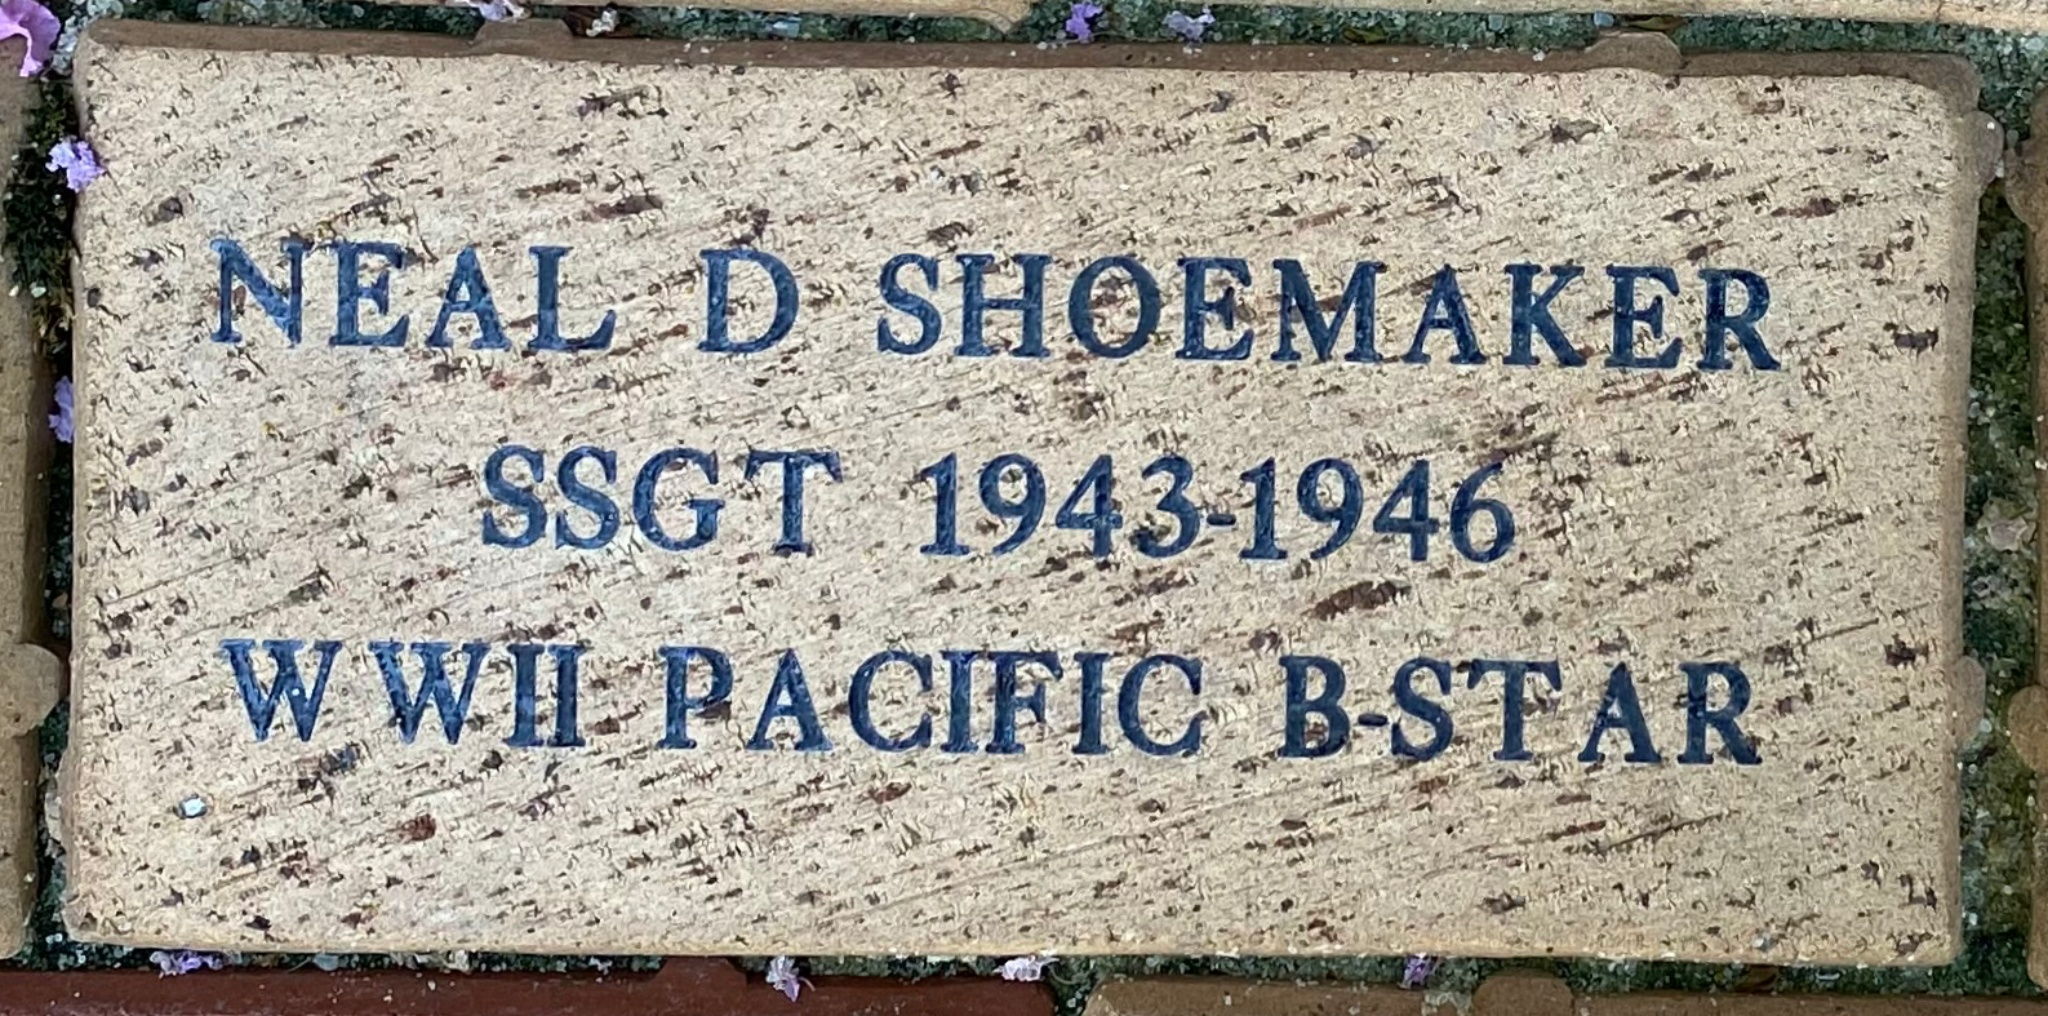 NEAL D SHOEMAKER SSGT 1943-1946 WWII-PACIFIC B-STAR